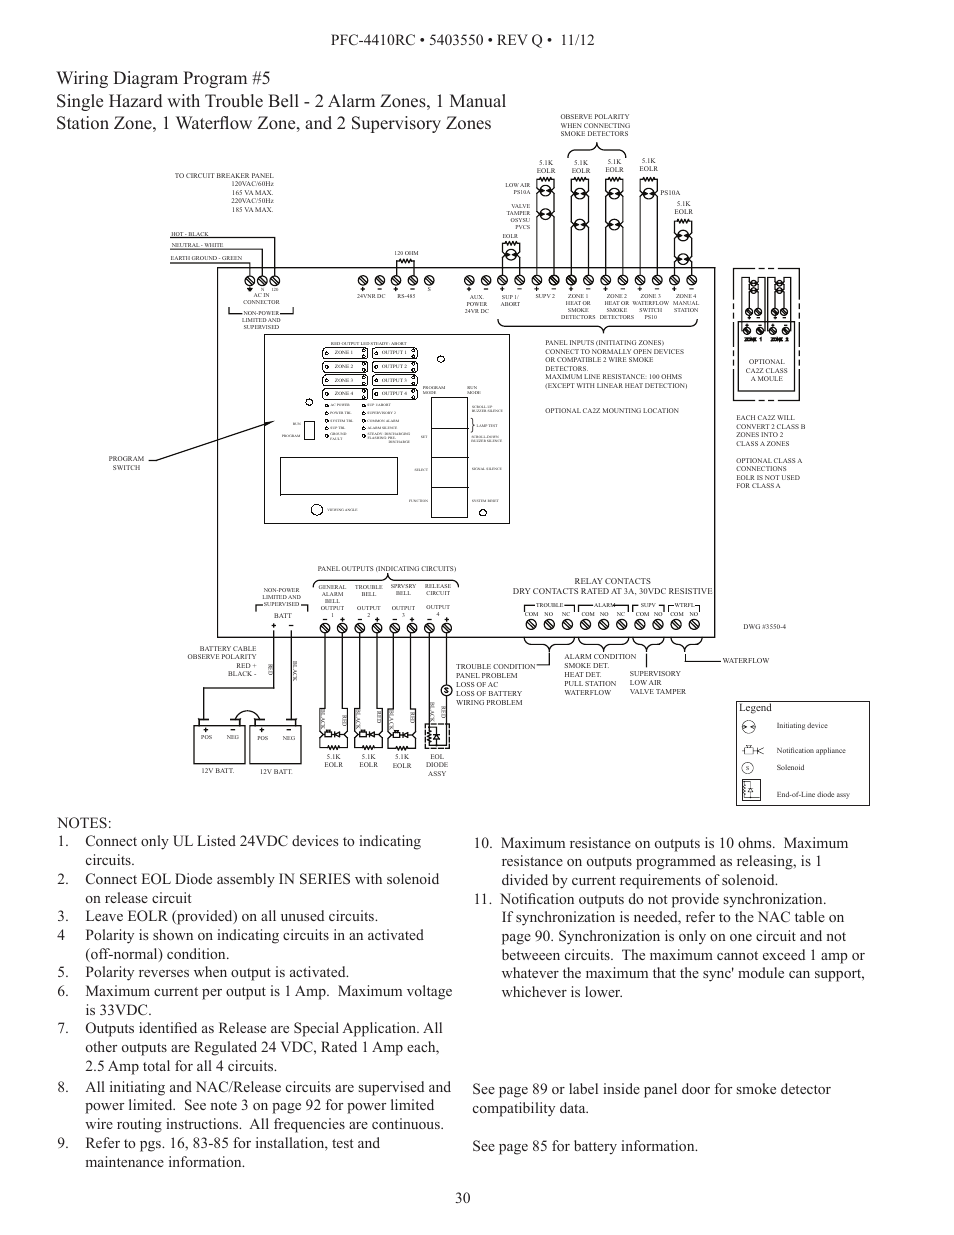 Potter Tamper Switch Wiring Diagram 35 Images Rc Relay Schematic Pfc 4410rc Page30 User Manual Page 30 99